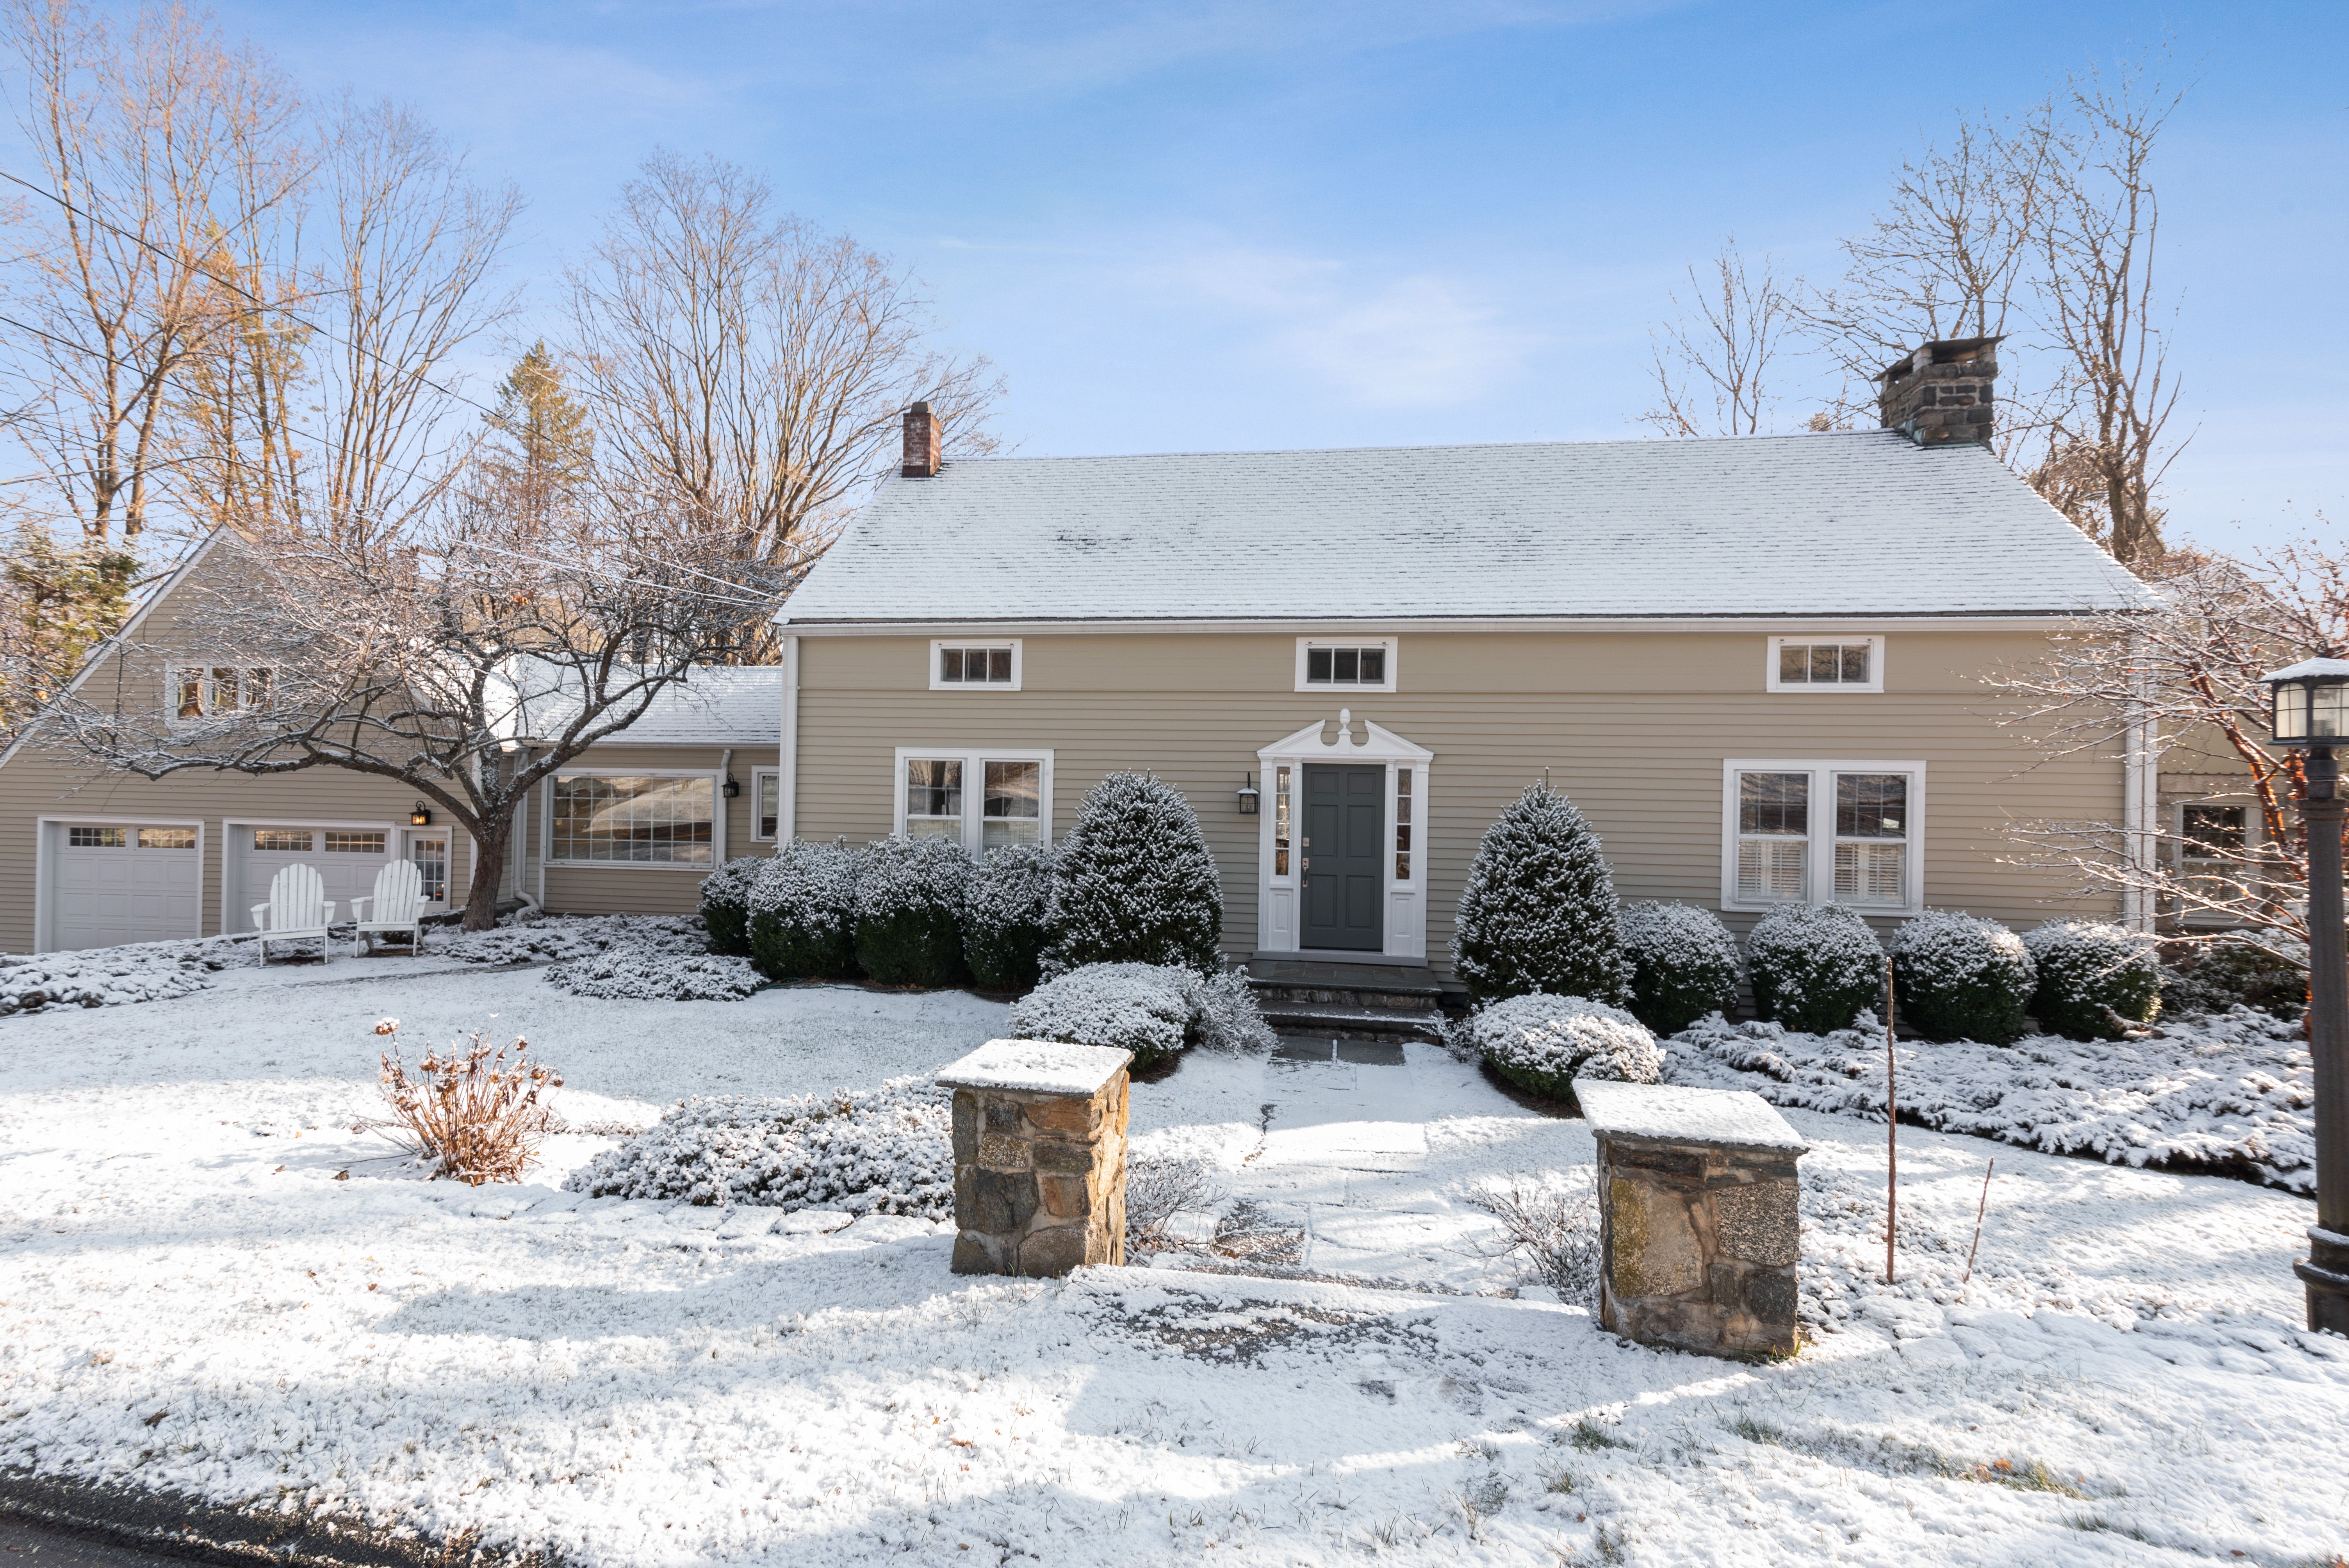 6 Hanover Road, Newtown, CT 06470 | 3 Bed, Single Family Home  For Sale By Owner